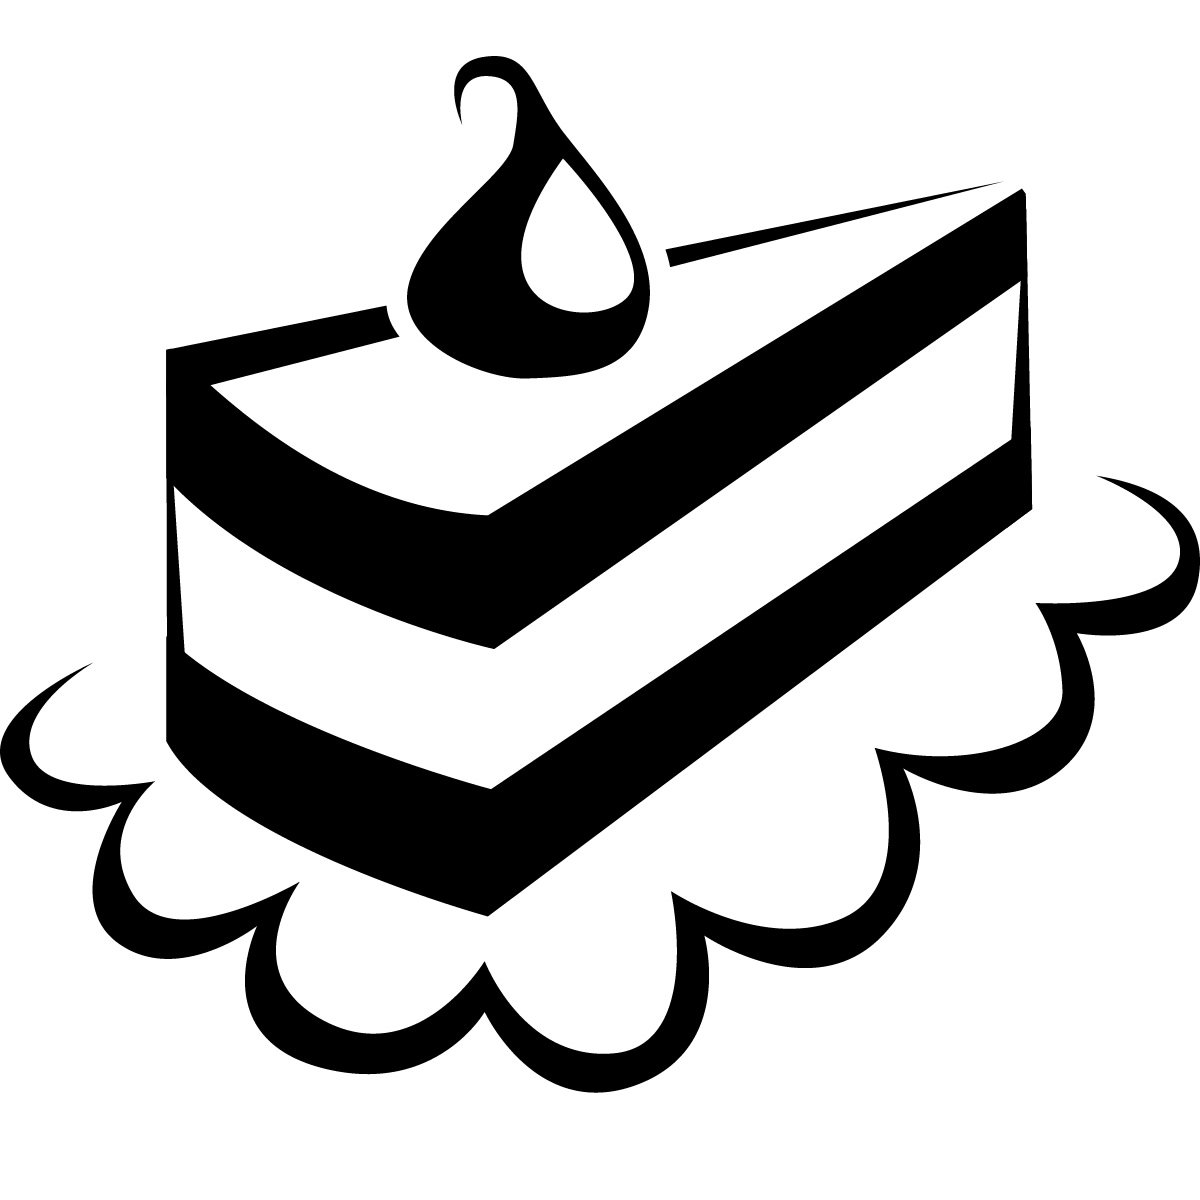 hight resolution of cake black and white free to use and share cake clipart for your website clipartdeck